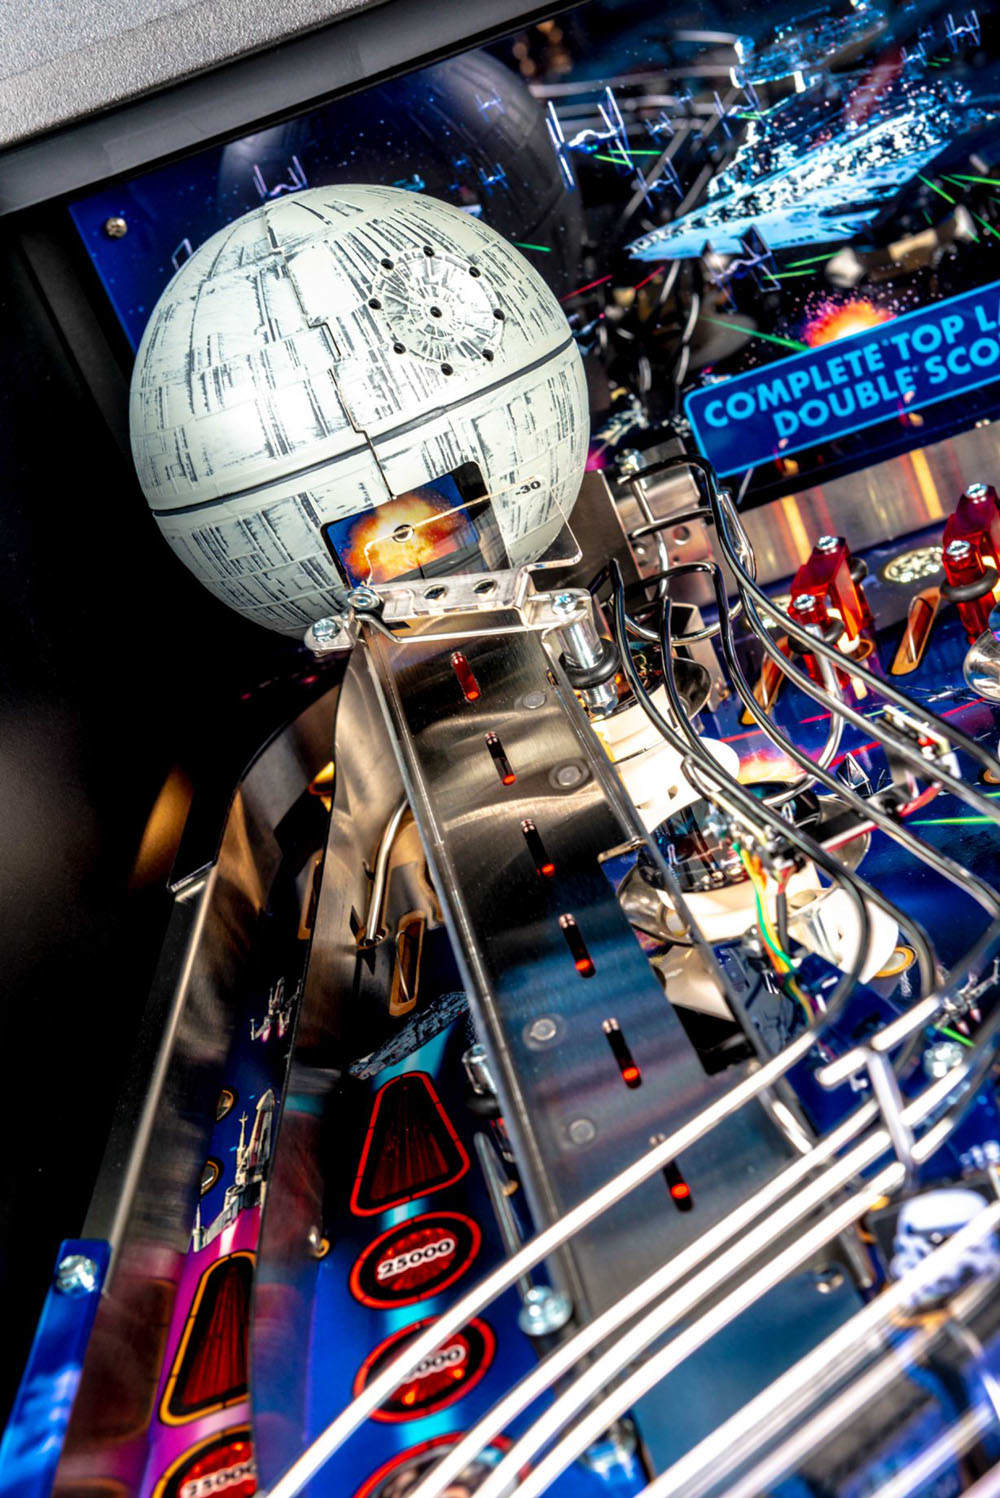 Star Wars Pin Pinball Machine - Death Star